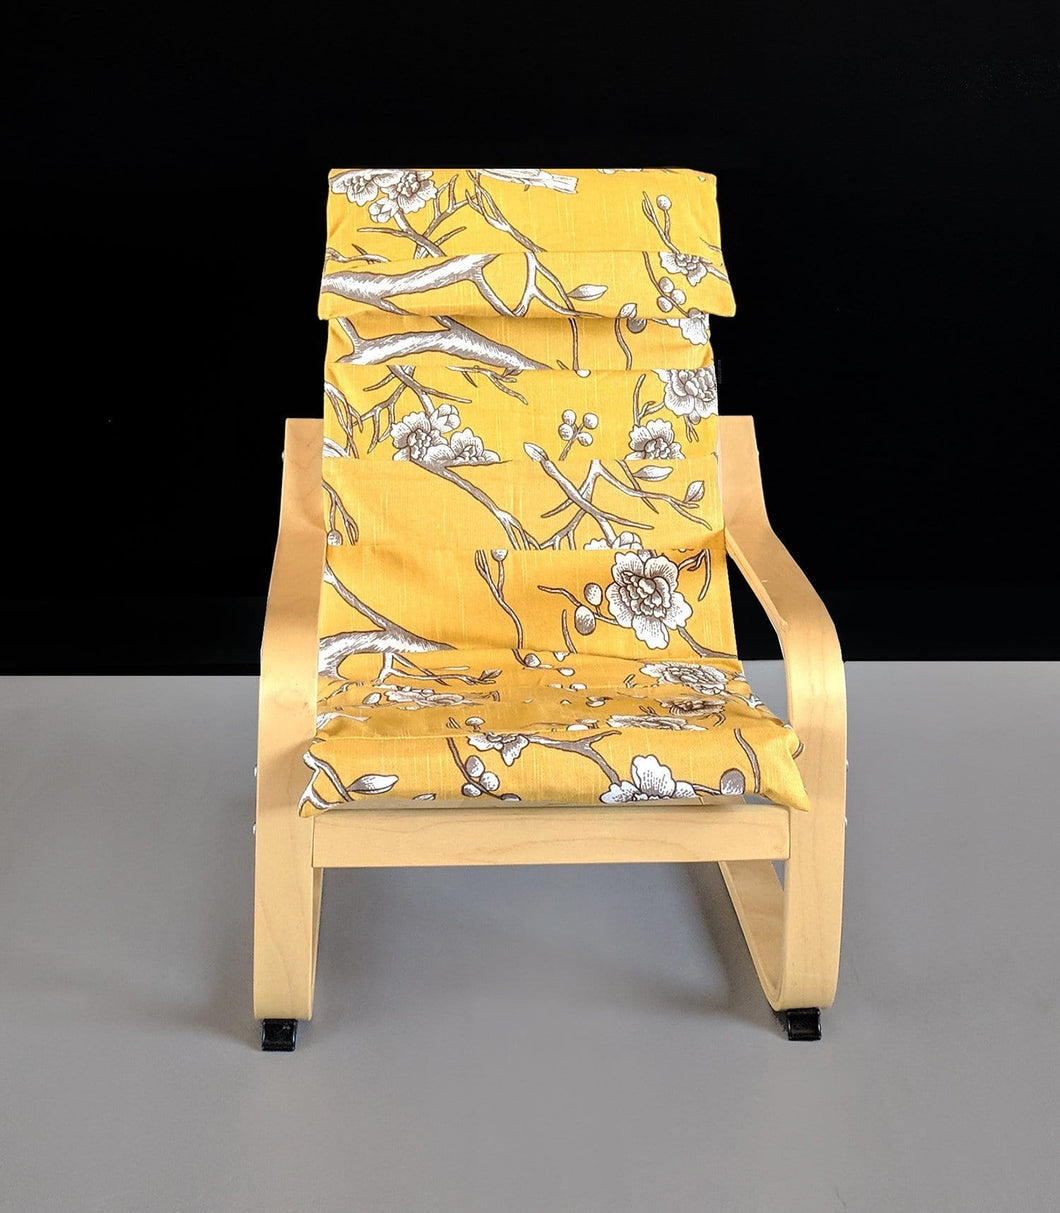 SALE Children's Ikea Poang Chair Cover, Yellow Nursery Room Decor, Patchwork Yellow Flower Print